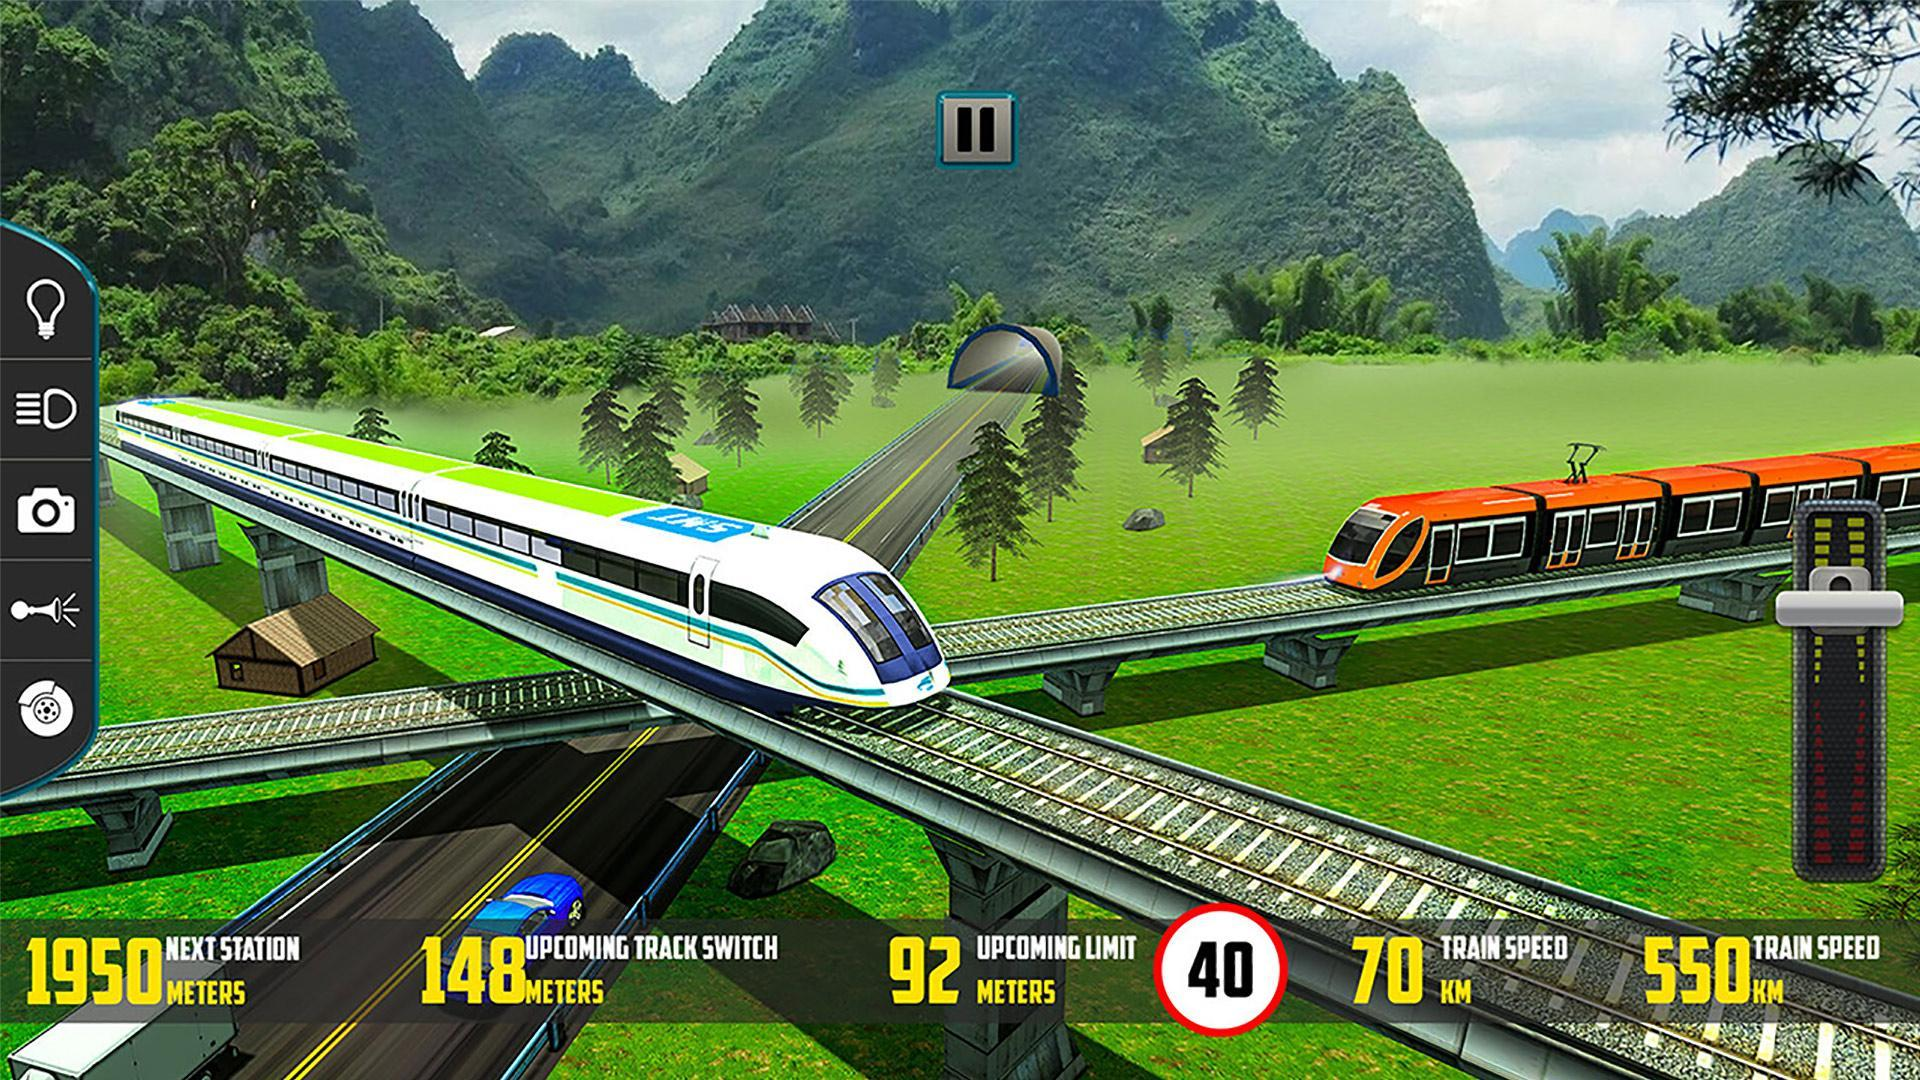 Download indonesian train simulator apk for android free | mob. Org.